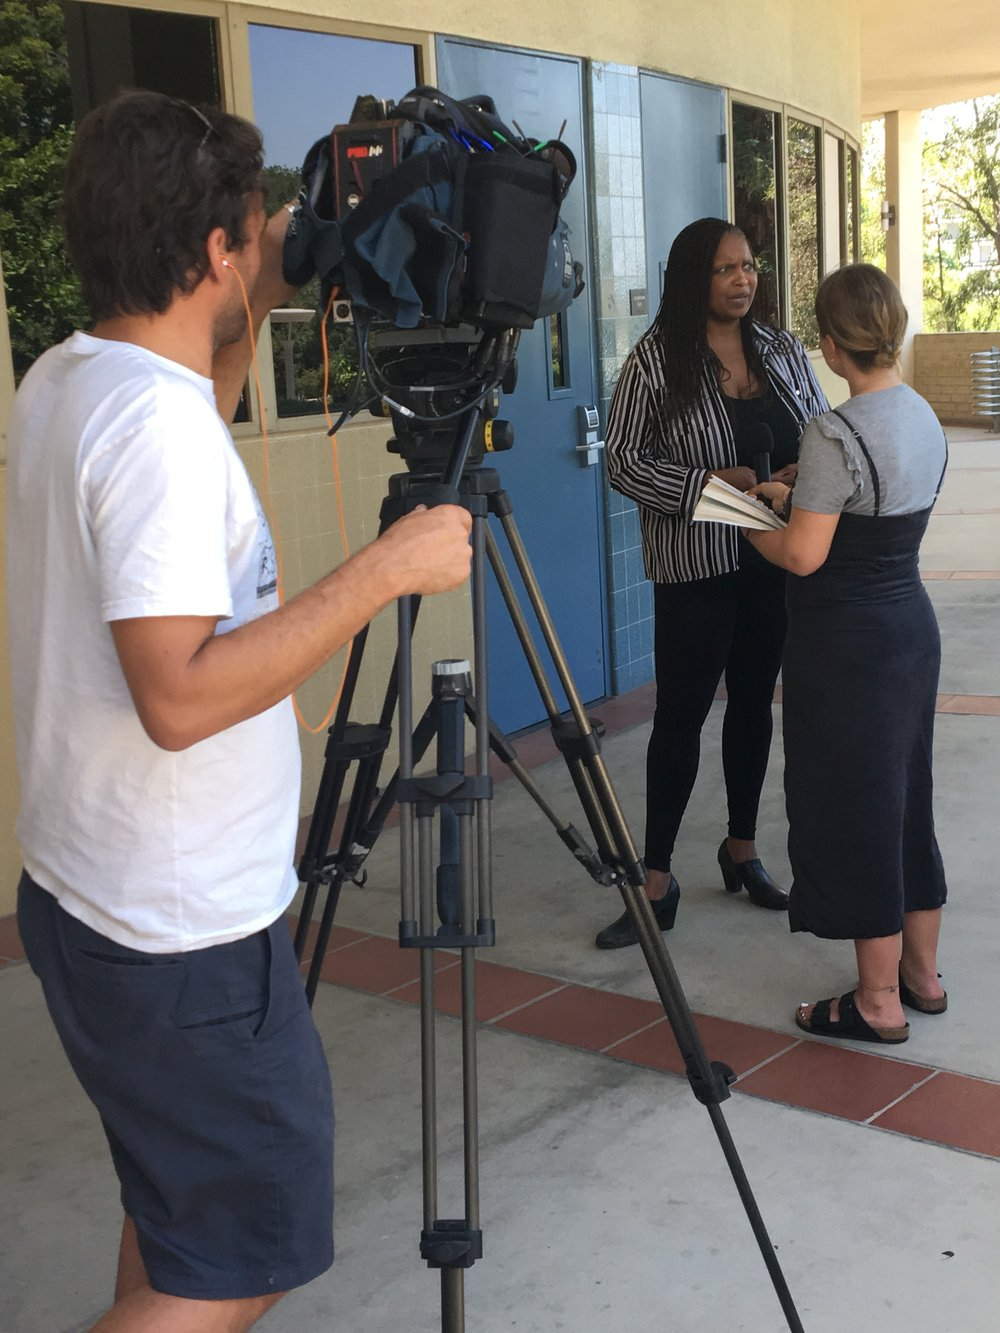 Young Actors Camp 's interview with Good Morning Britain on the campus of Claremont McKenna College.